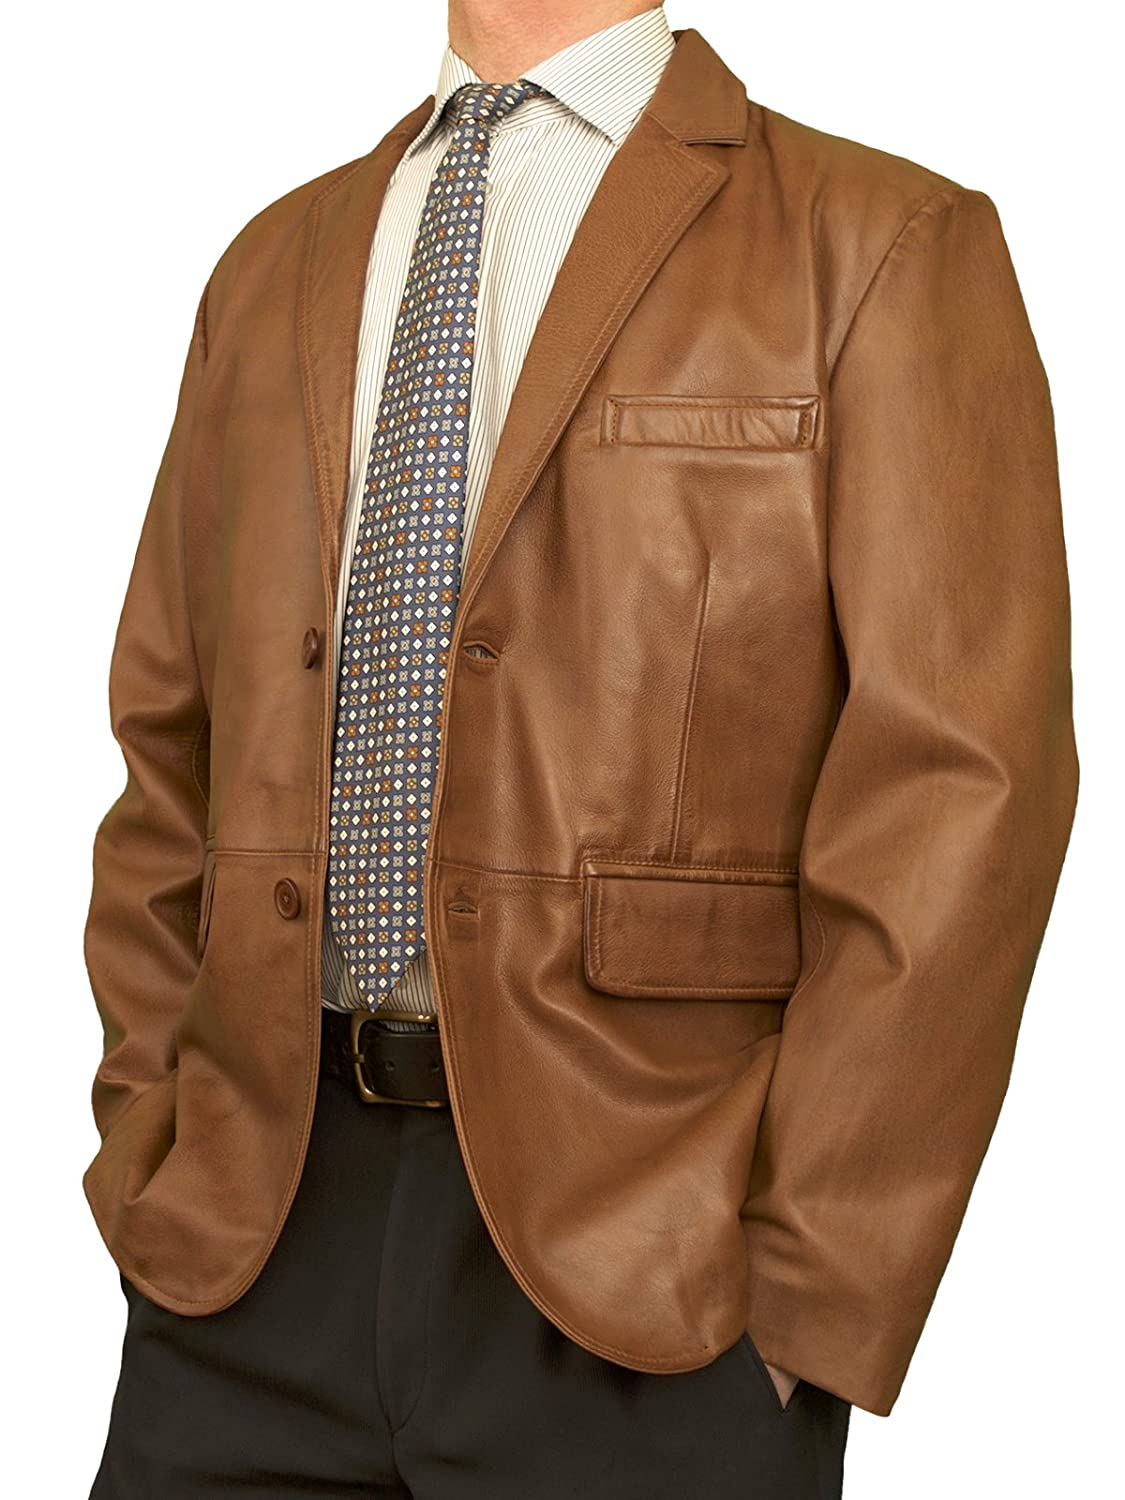 Ashwood Mens Superior Luxury Real Leather Blazer Jacket, 2-Buttons